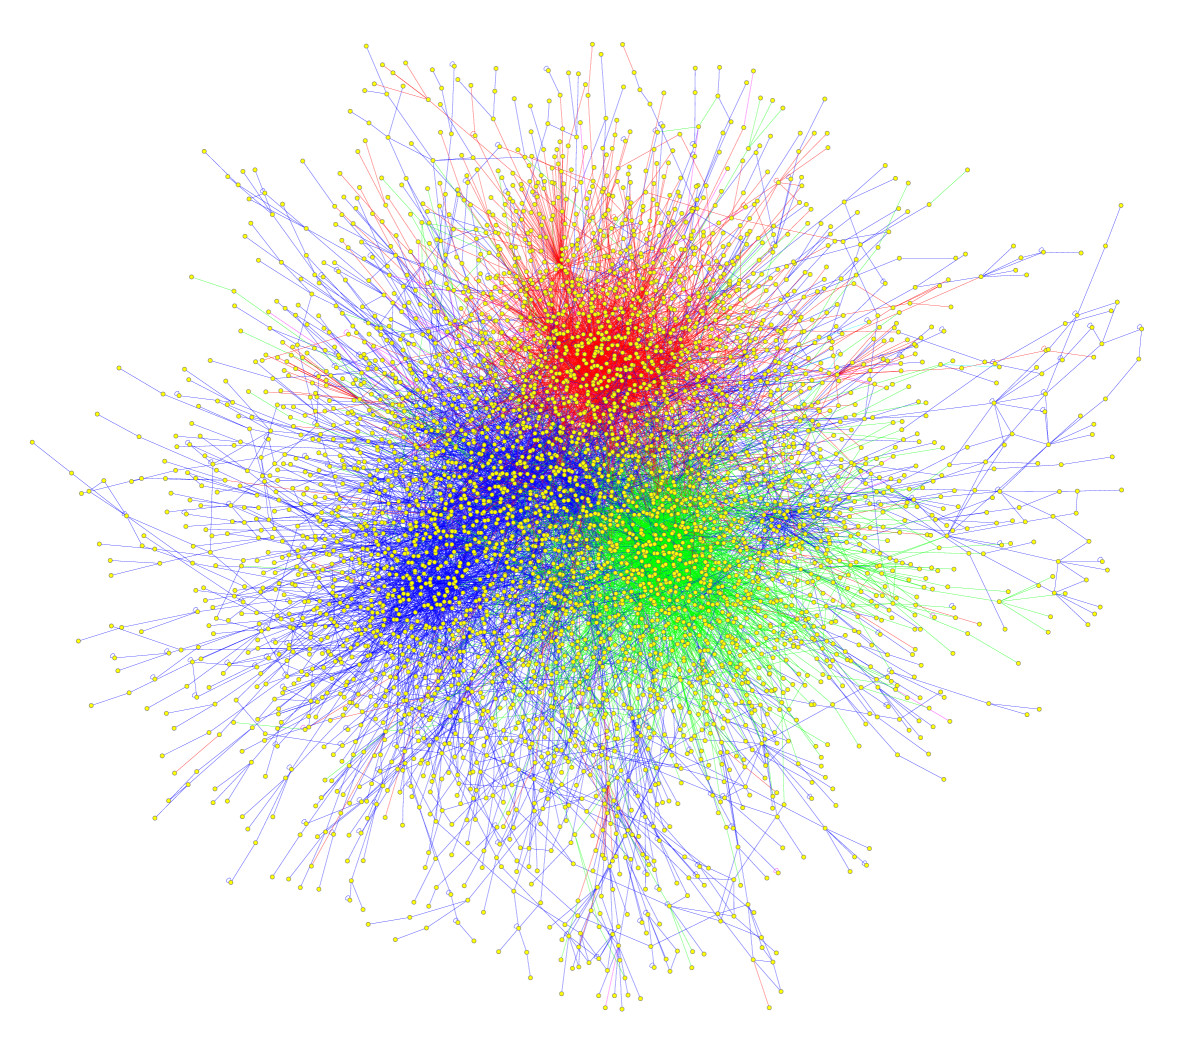 https://static-content.springer.com/image/art%3A10.1186%2F1741-7007-8-40/MediaObjects/12915_2010_Article_336_Fig1_HTML.jpg